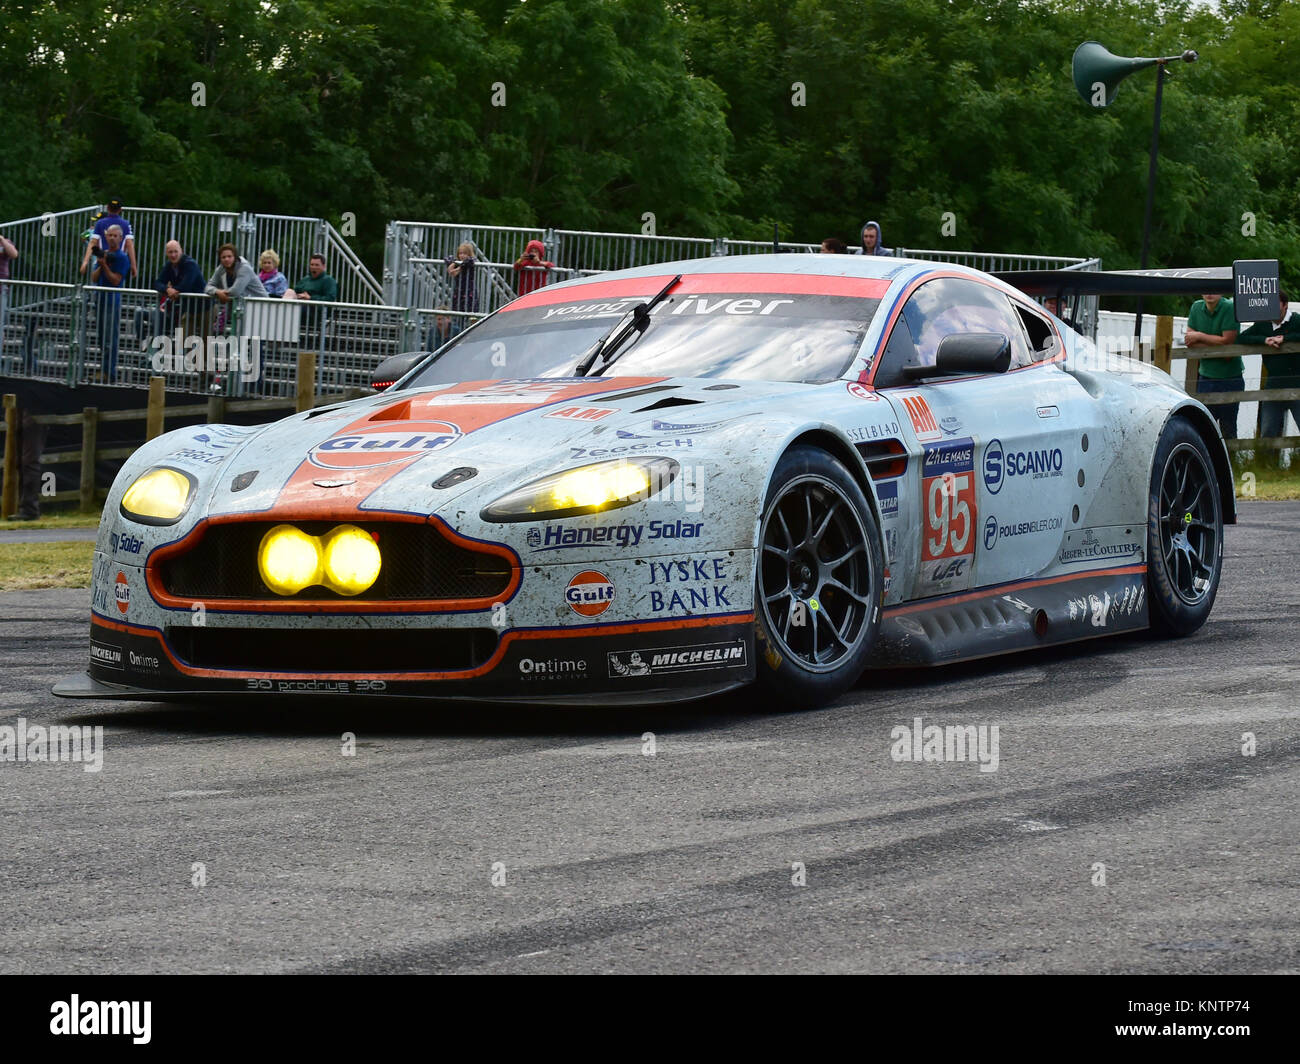 Aston Martin V12 Vantage Gt3 Goodwood Festival Of Speed 2014 2014 Stock Photo Alamy